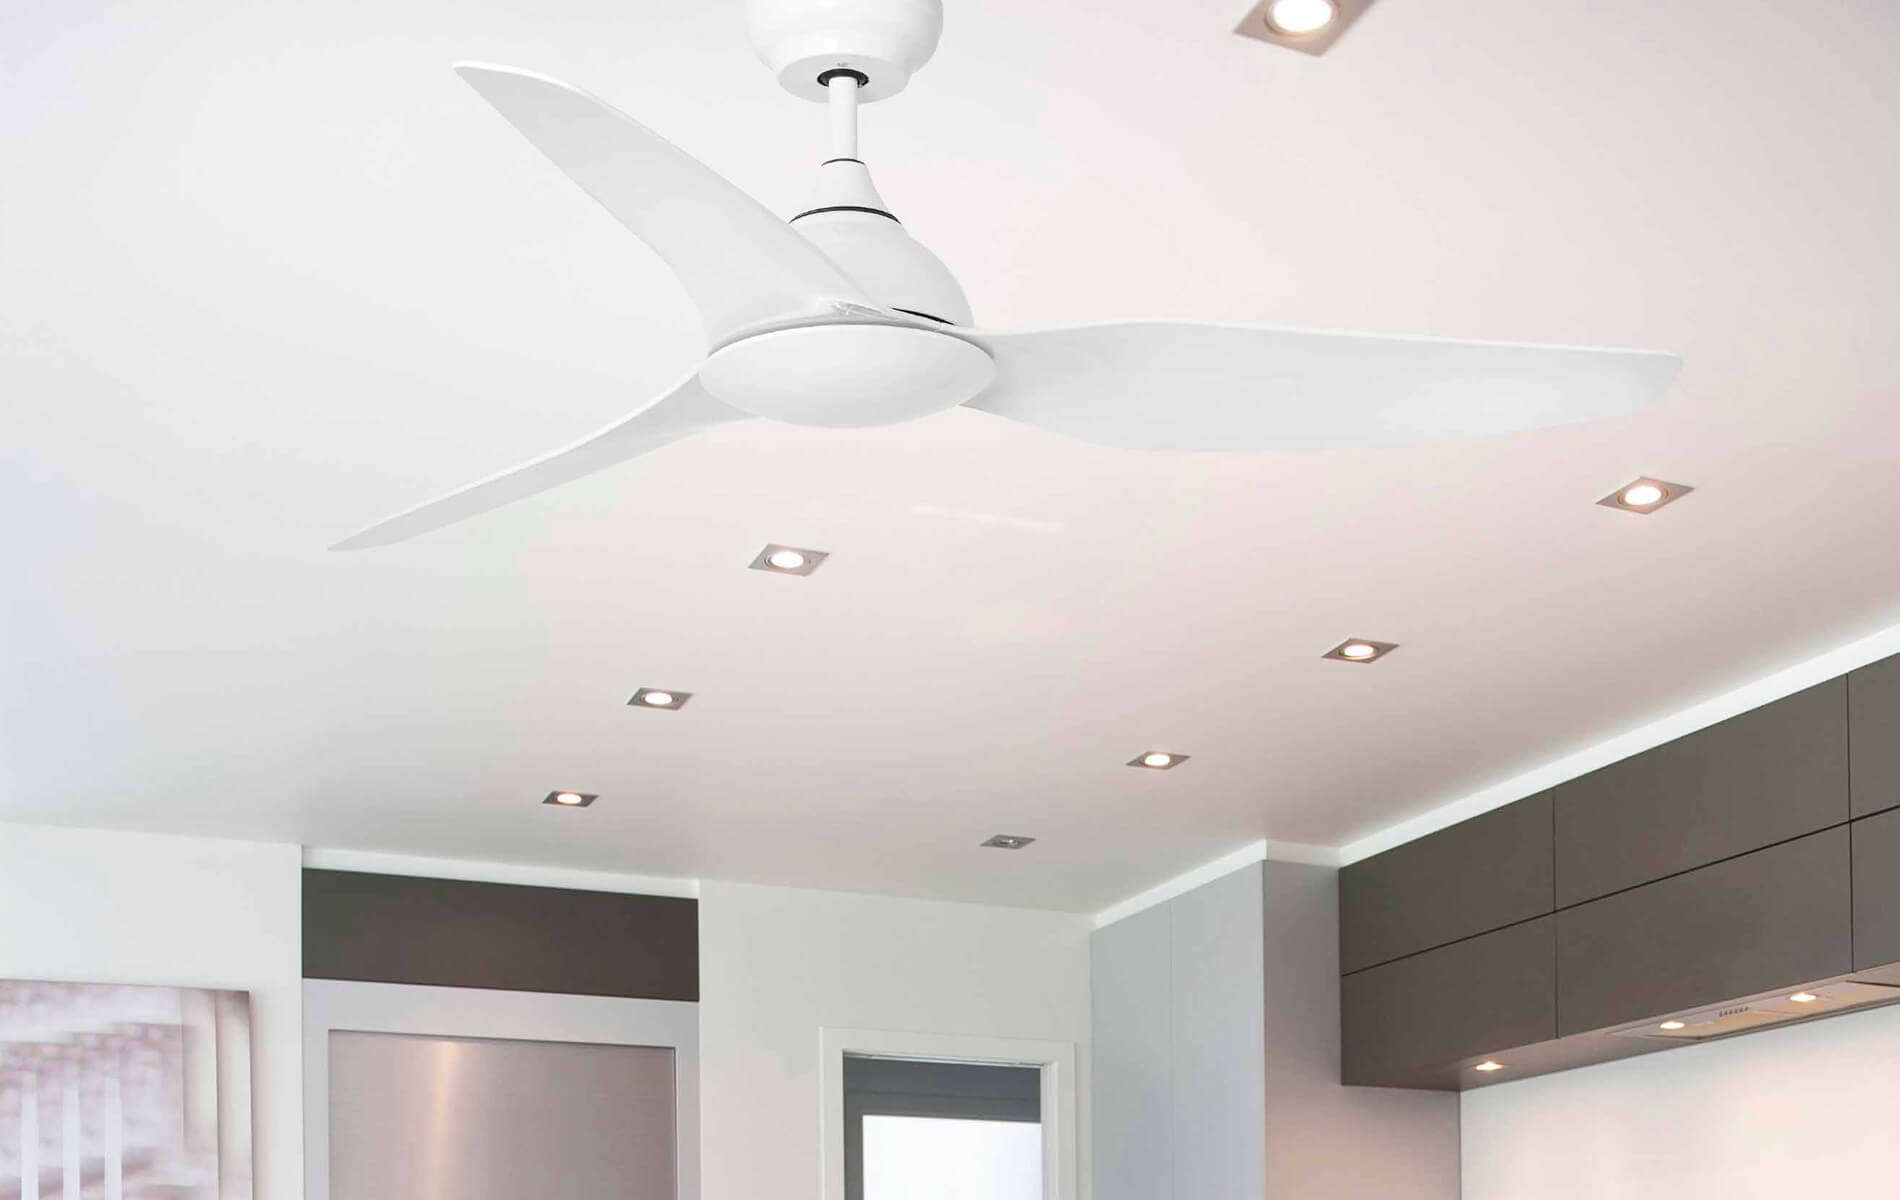 More information of Faro SIOUX ceiling fan